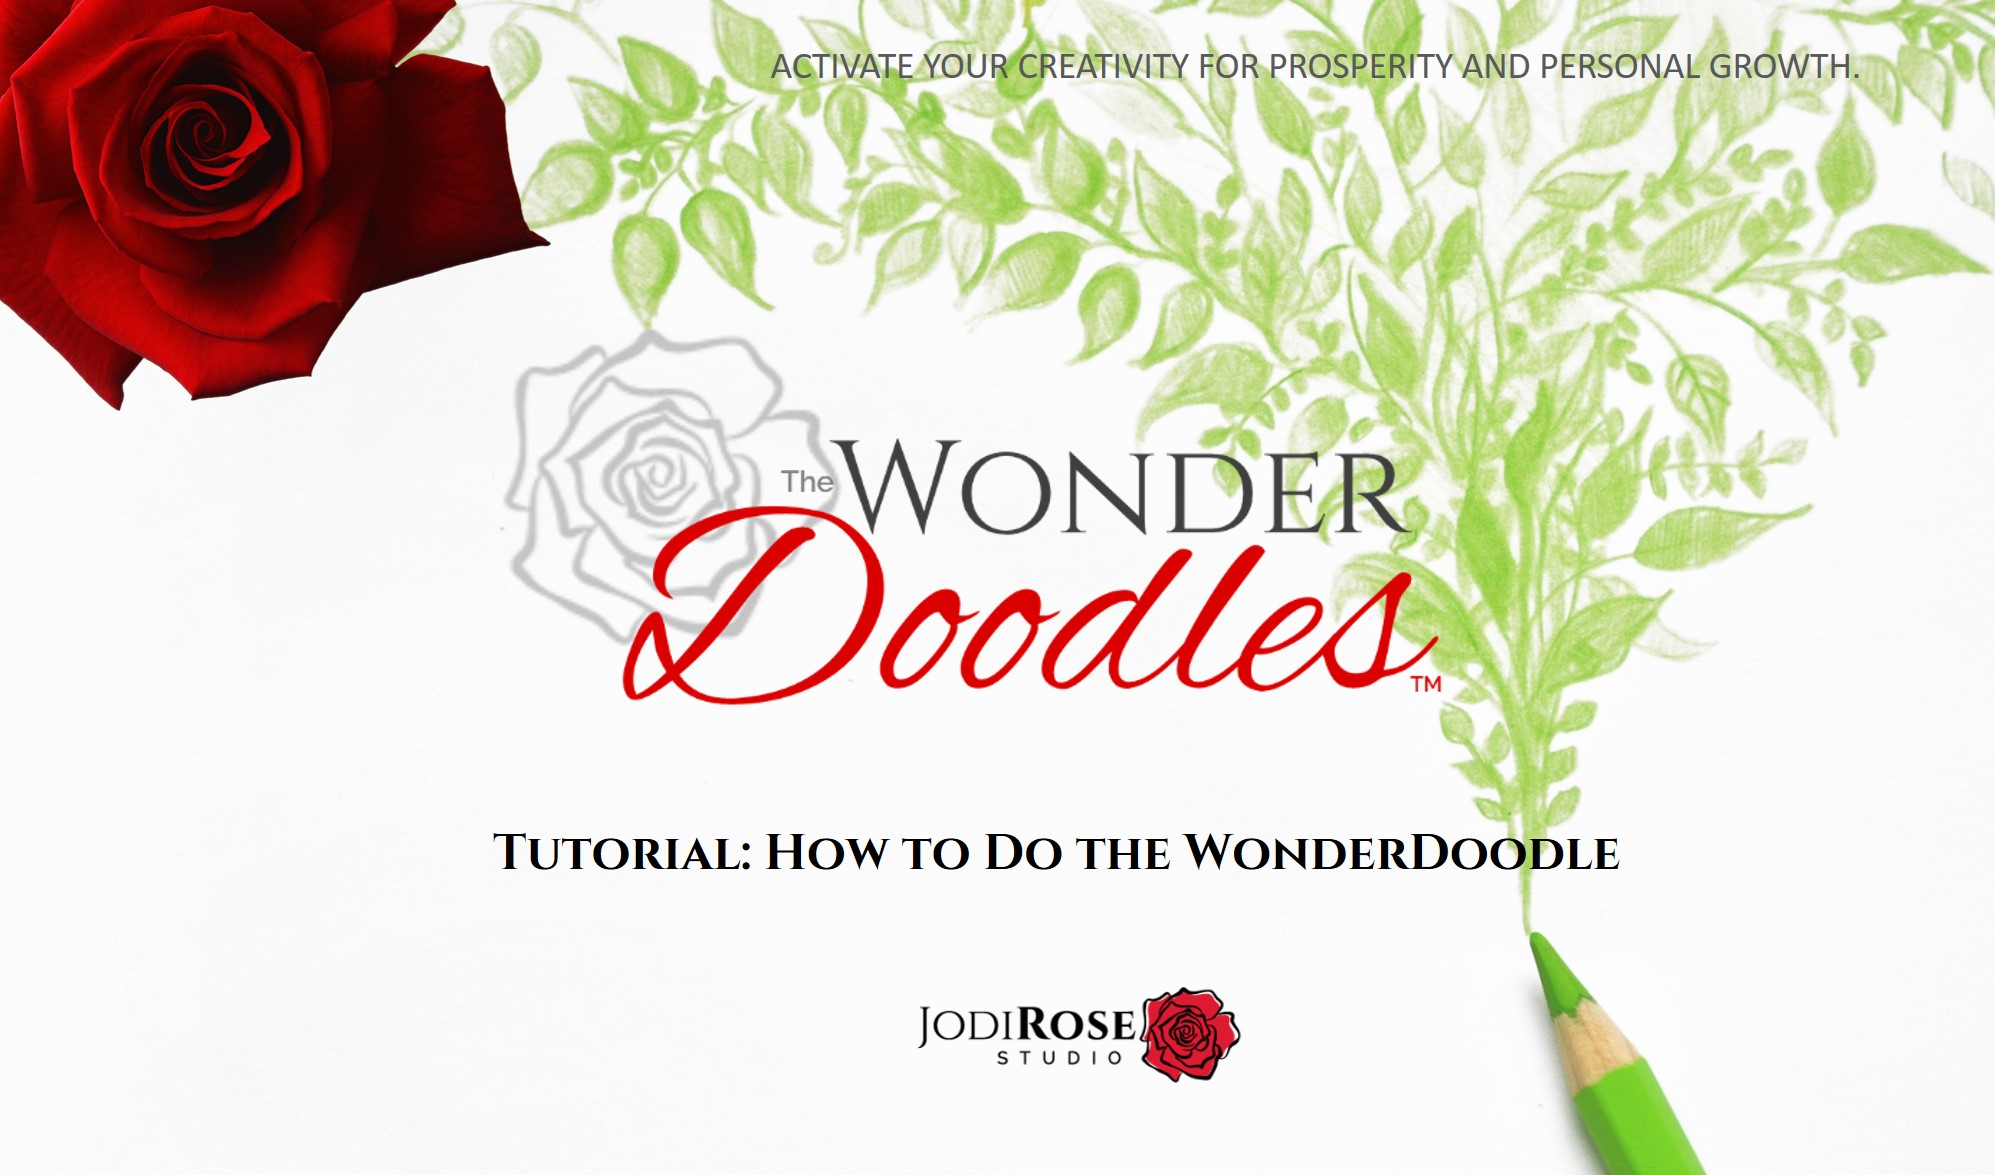 Click on the Image to receive Wonderdoodles!